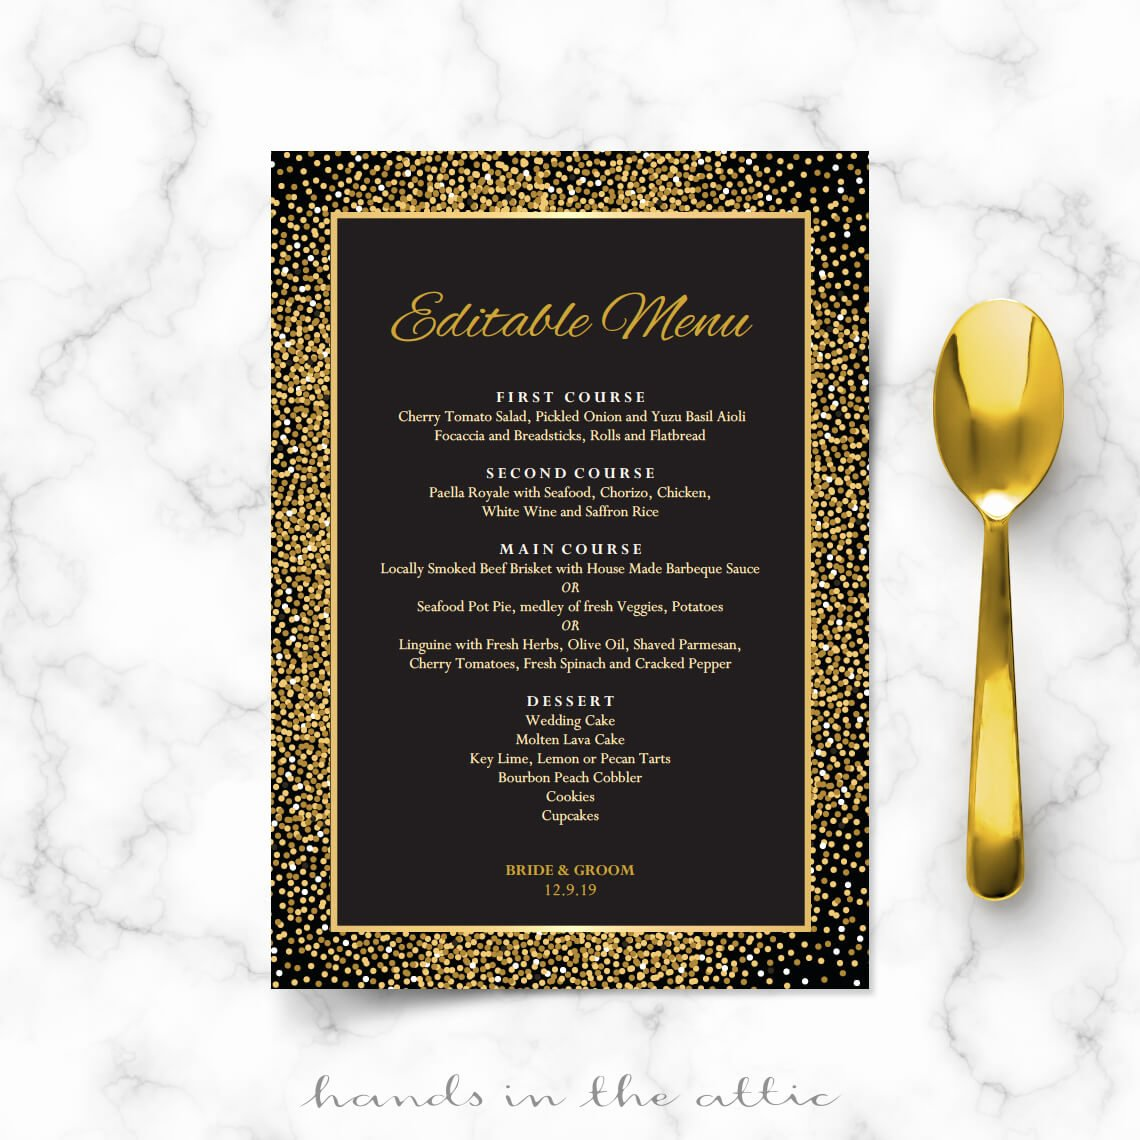 Rehearsal Dinner Menu Template Fresh Rehearsal Dinner Menu Cards Black and Gold Wedding Menu